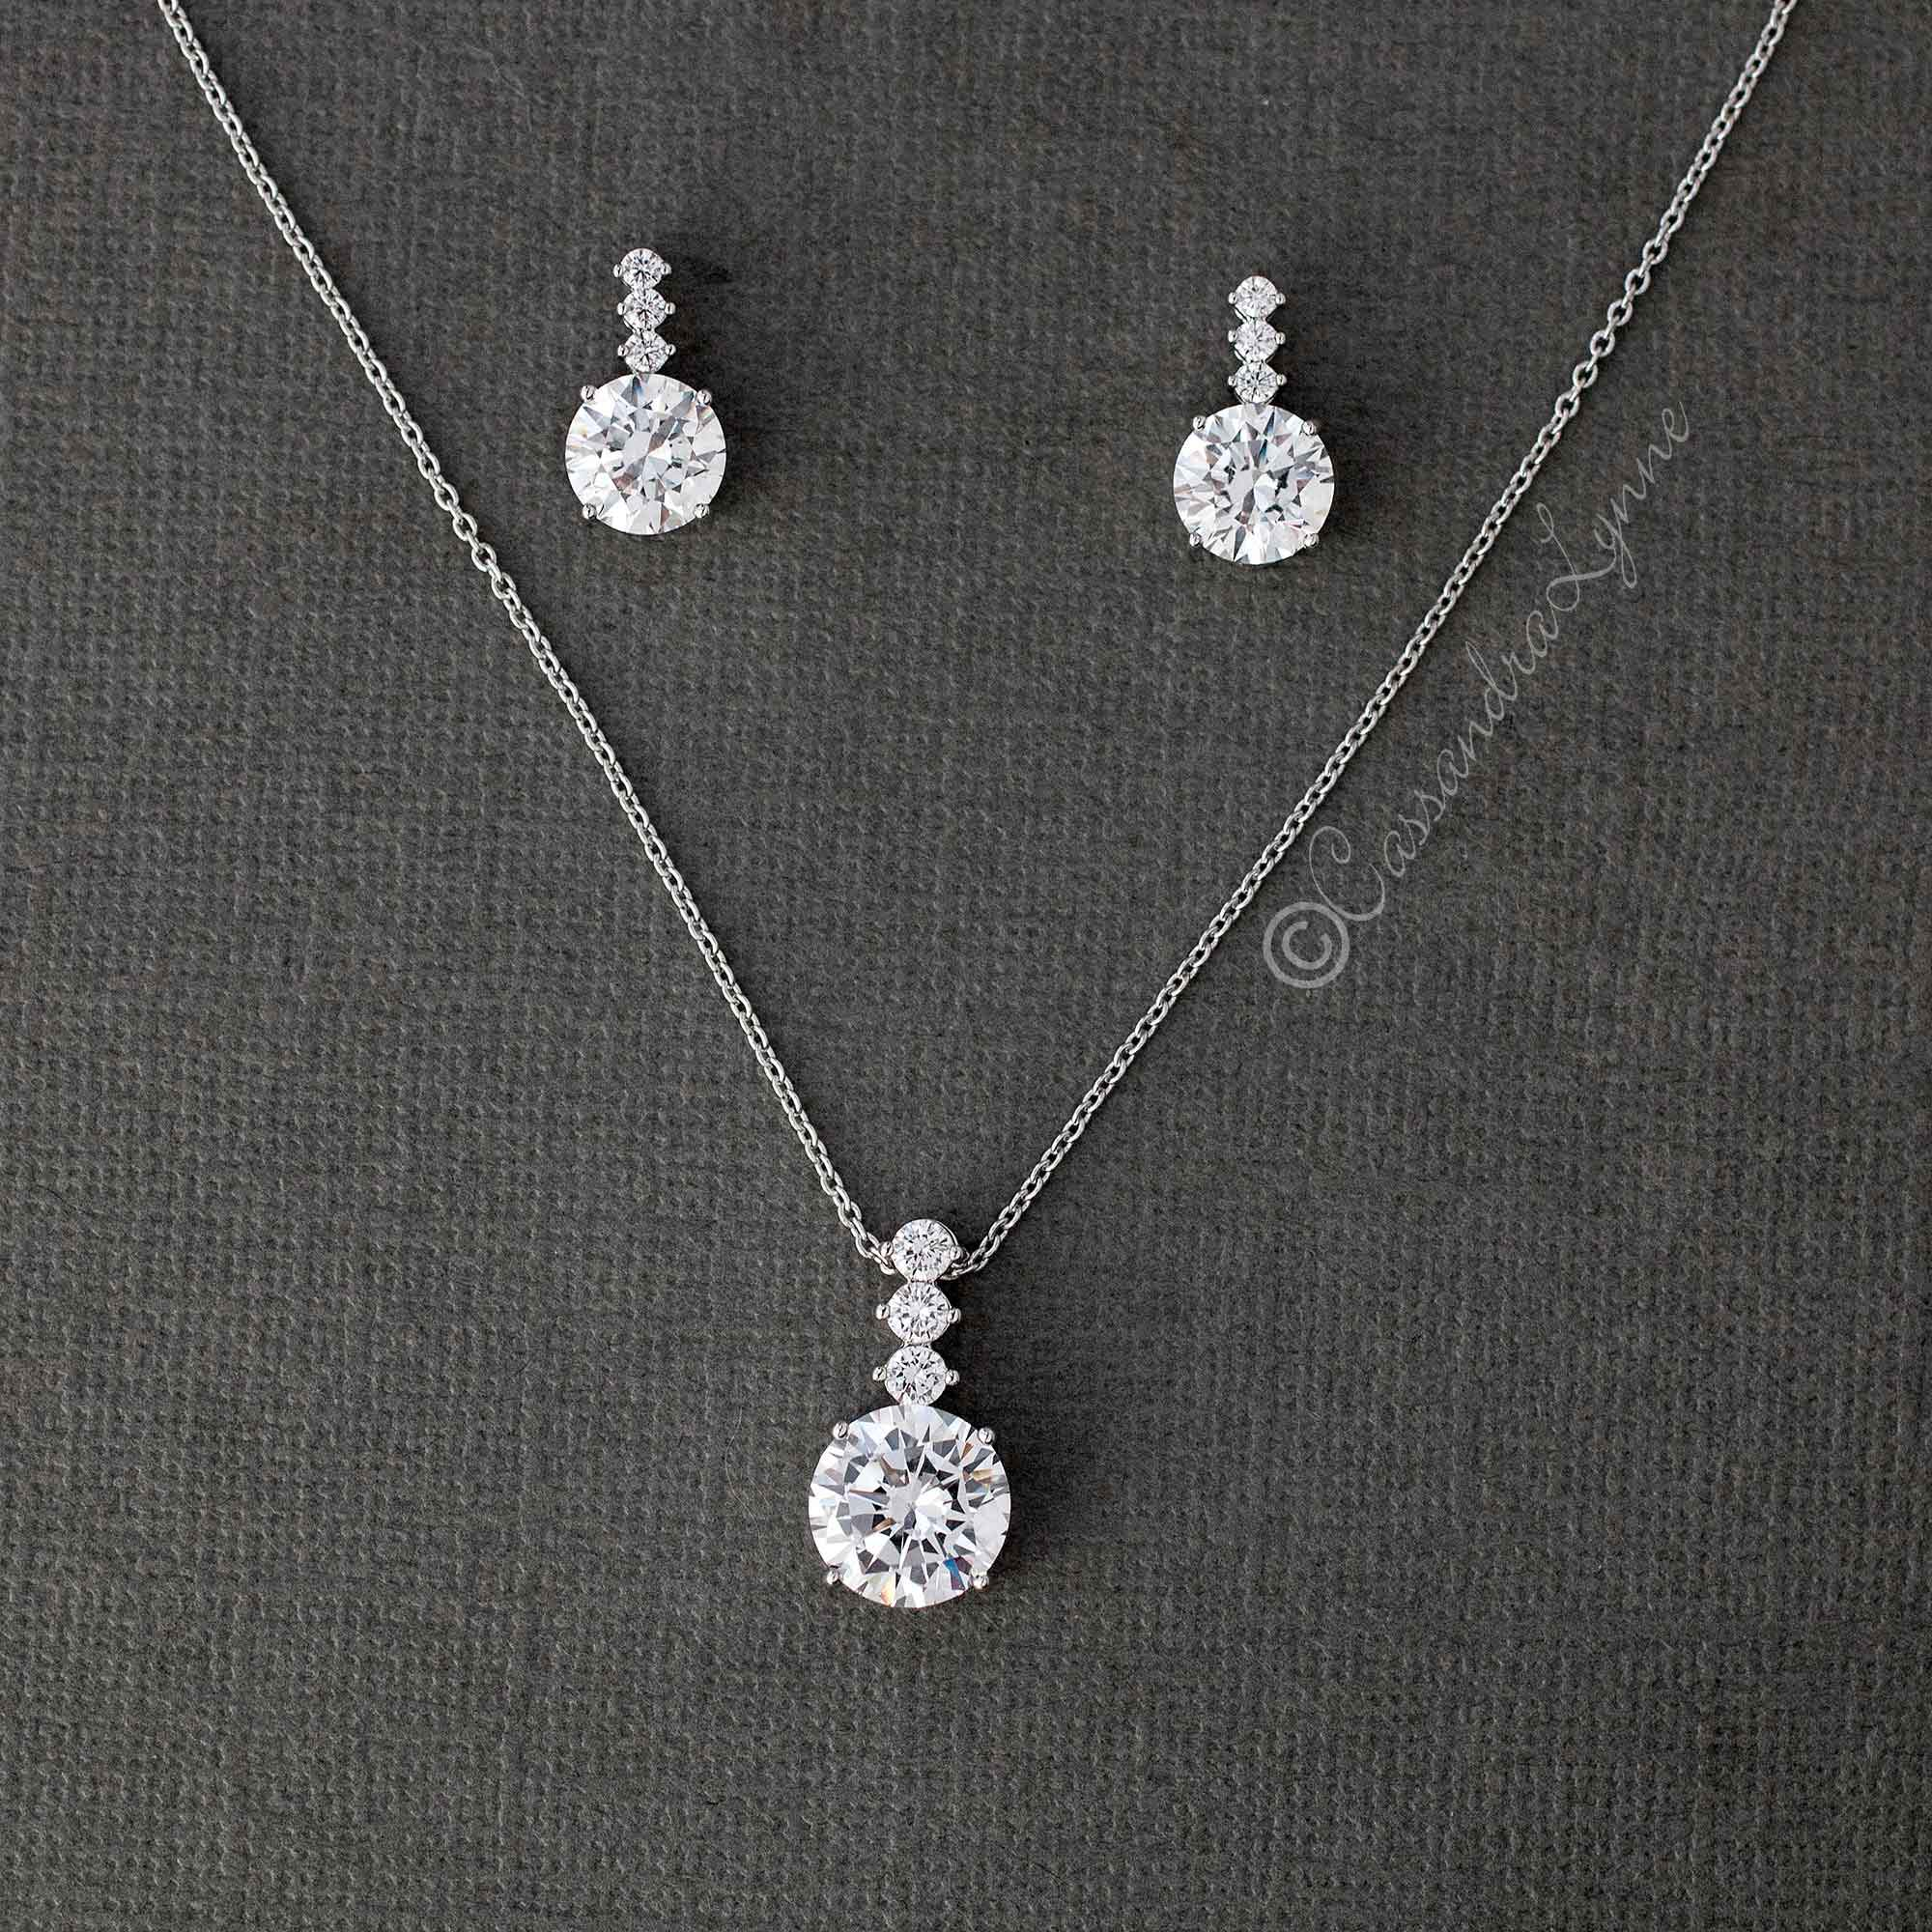 Round CZ Jewel Pendant Necklace Earring Set